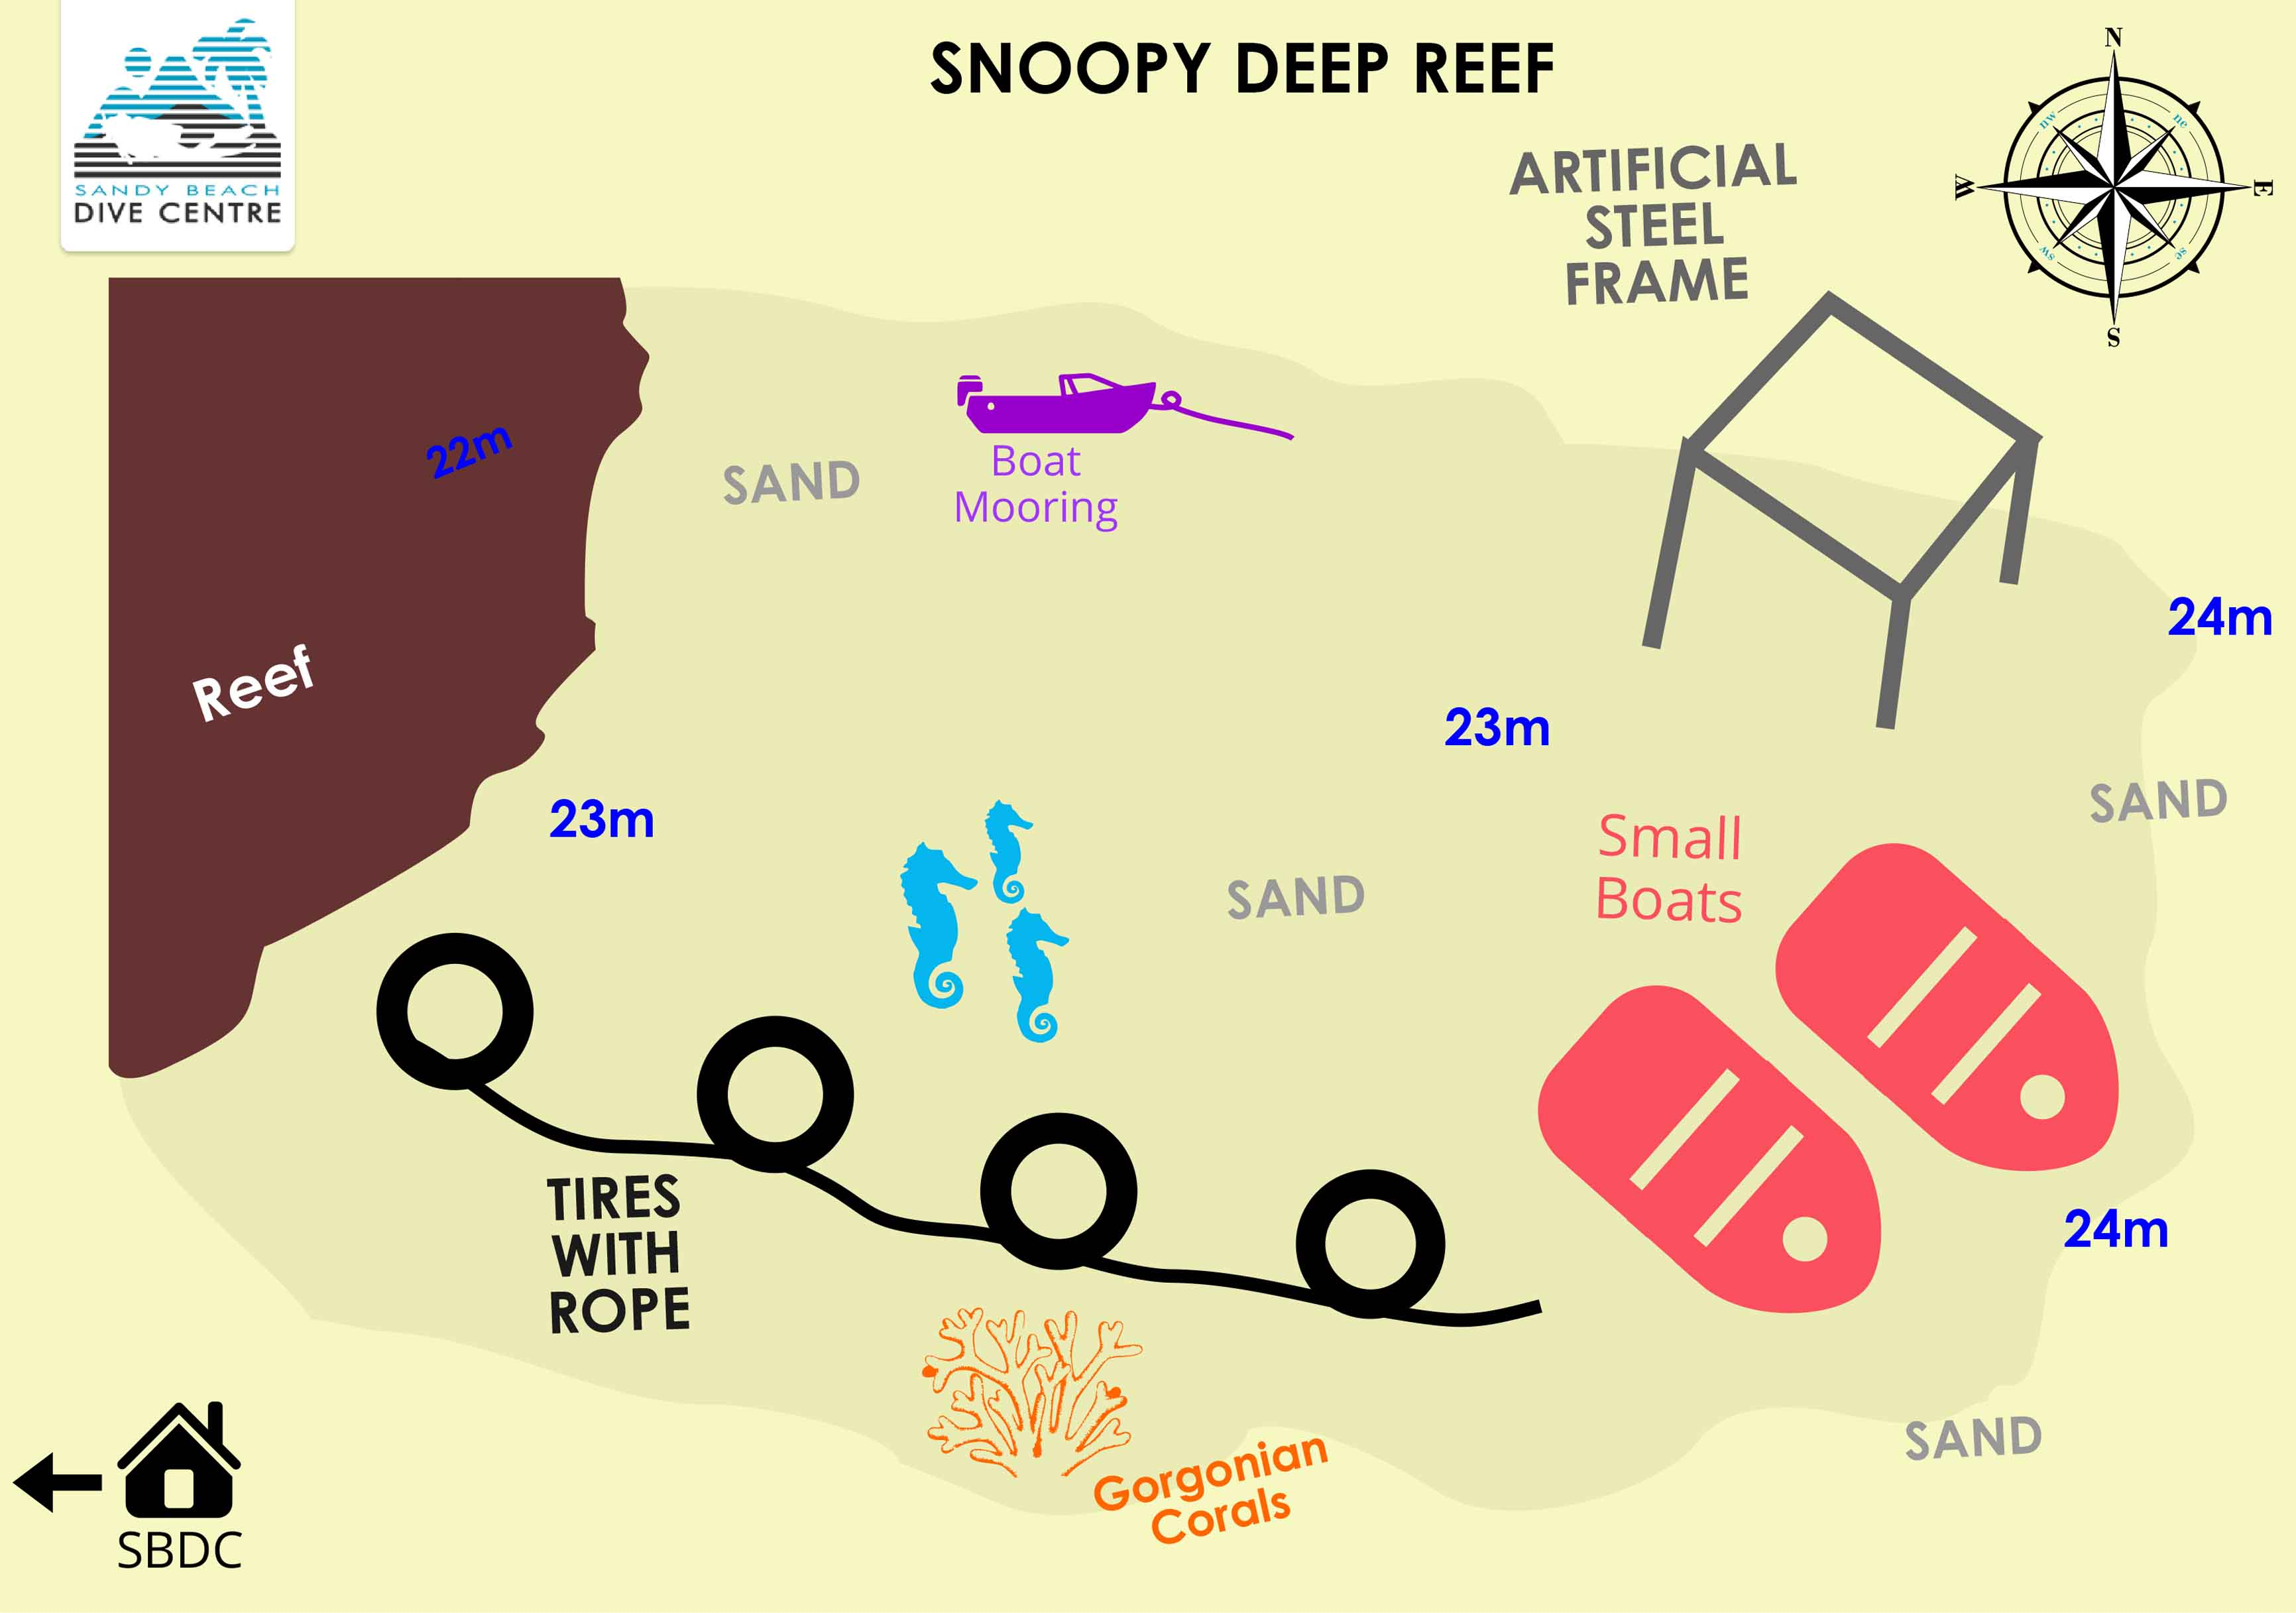 Snoopy Deep Reef